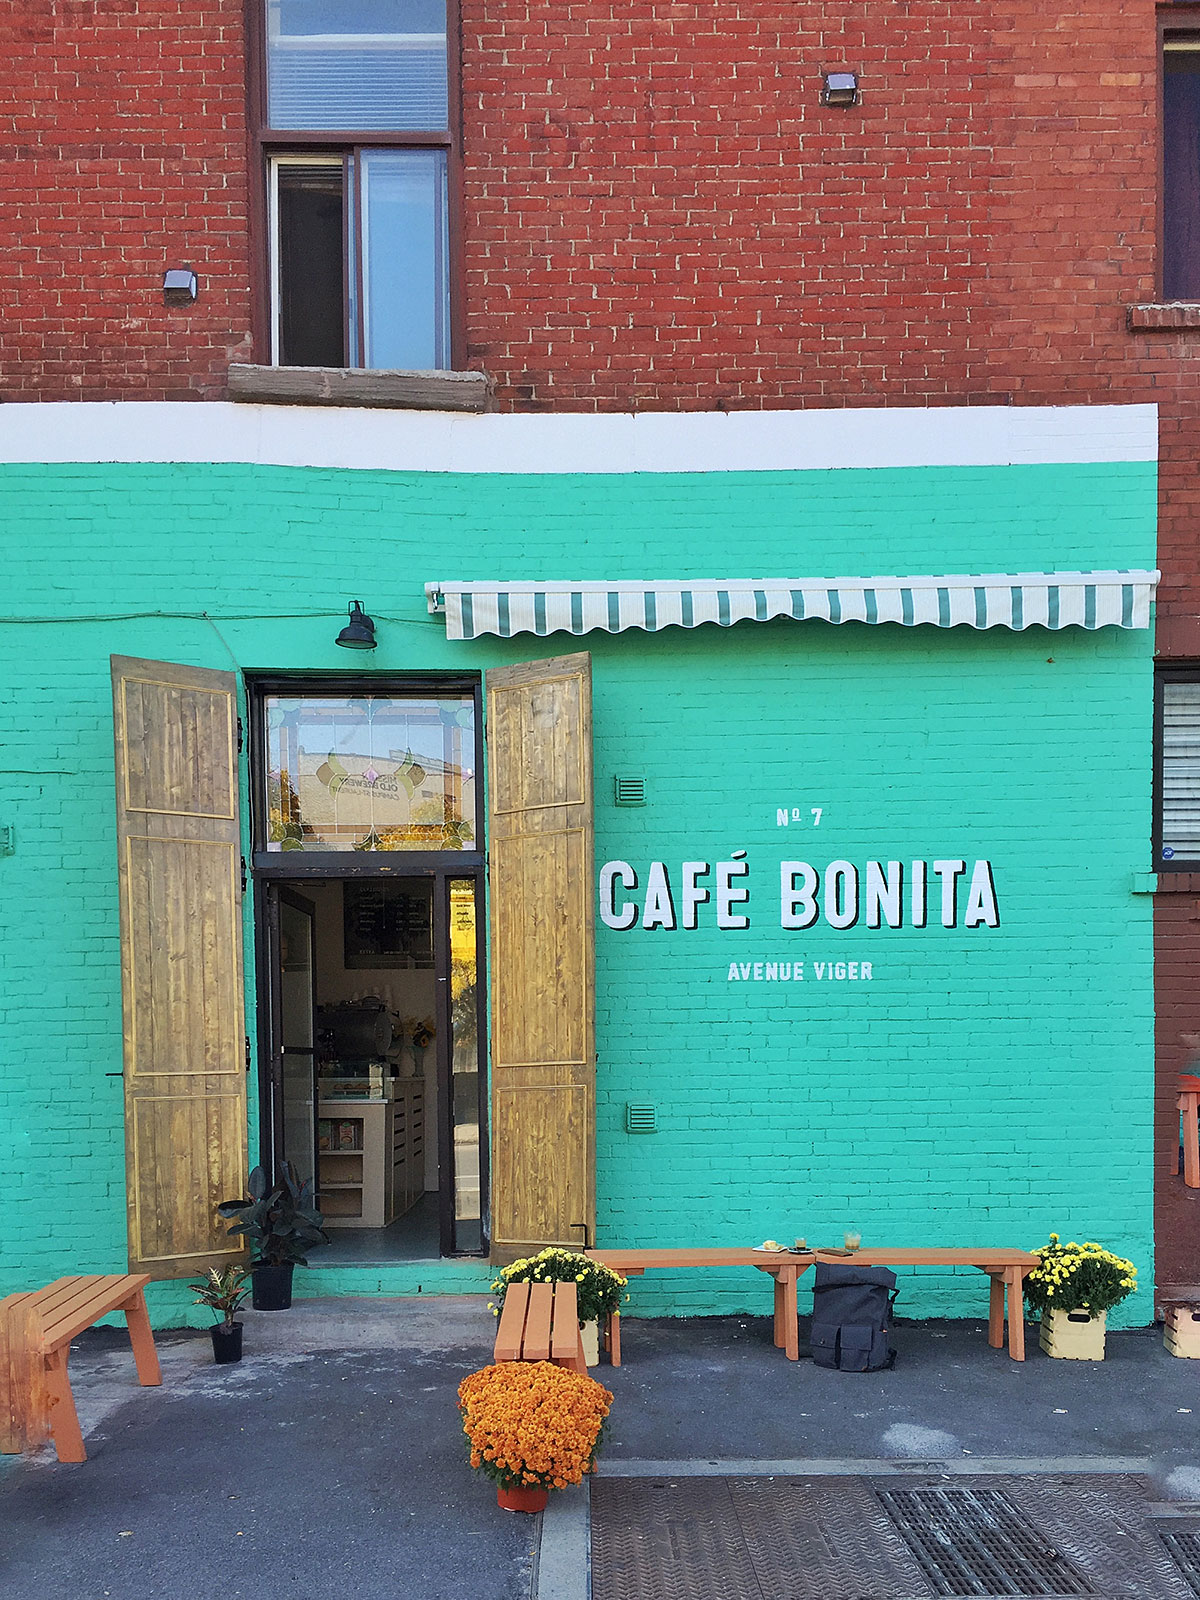 cuban-cafe-bonita-chinatown-montreal © Will Travel for Food